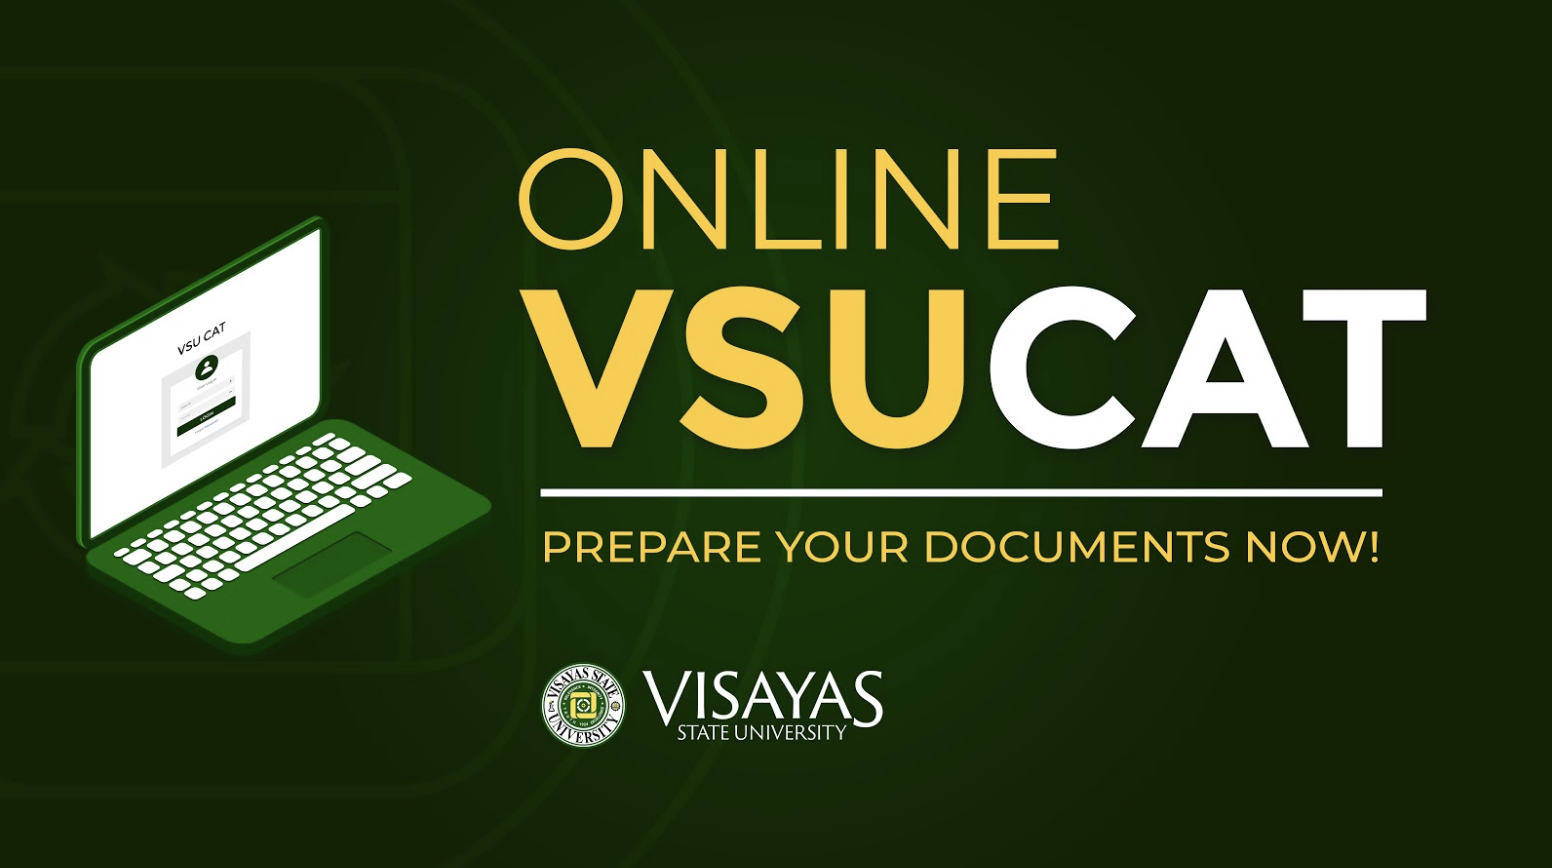 VSU CAT goes online for AY 2021-2022